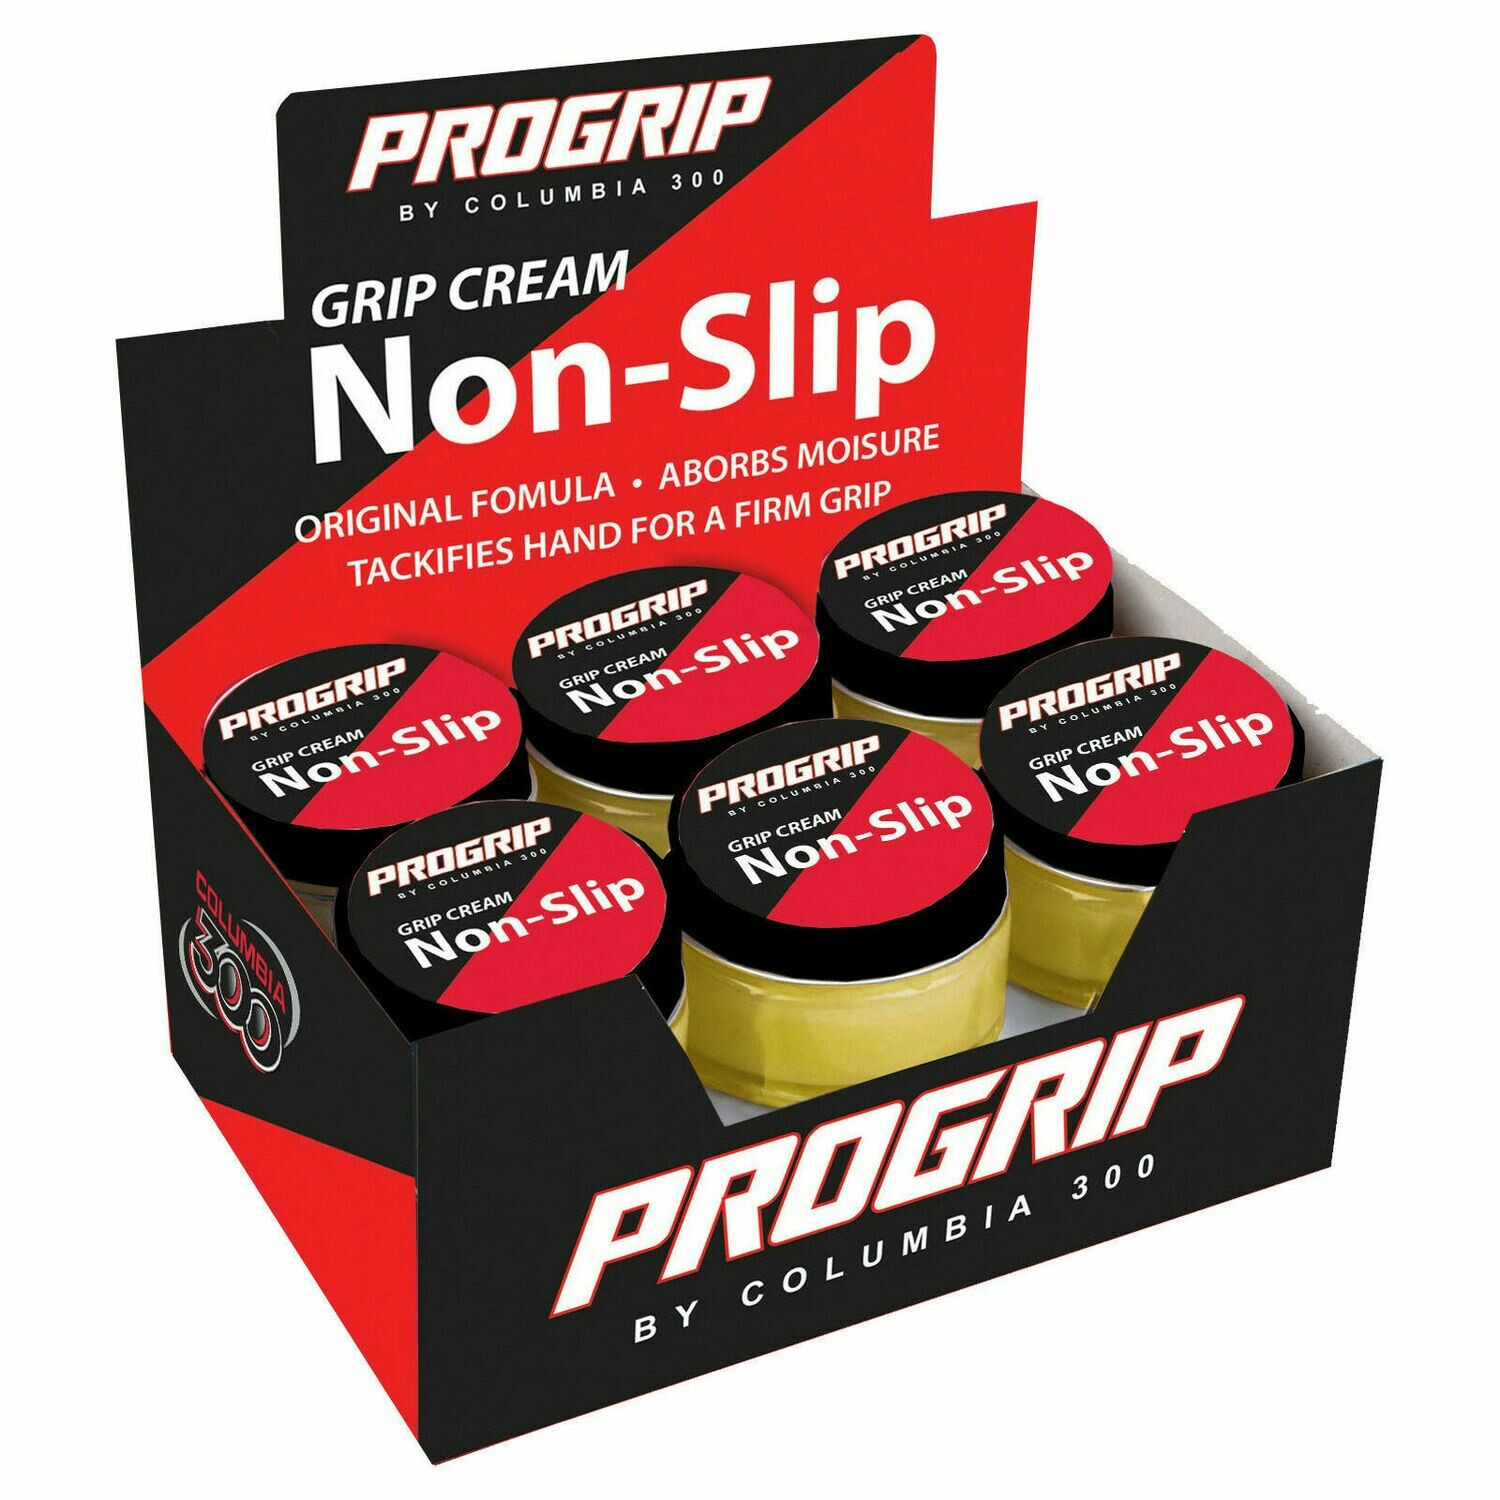 Columbia 300 Pro Grip Non-Slip Grip Cream (Single)